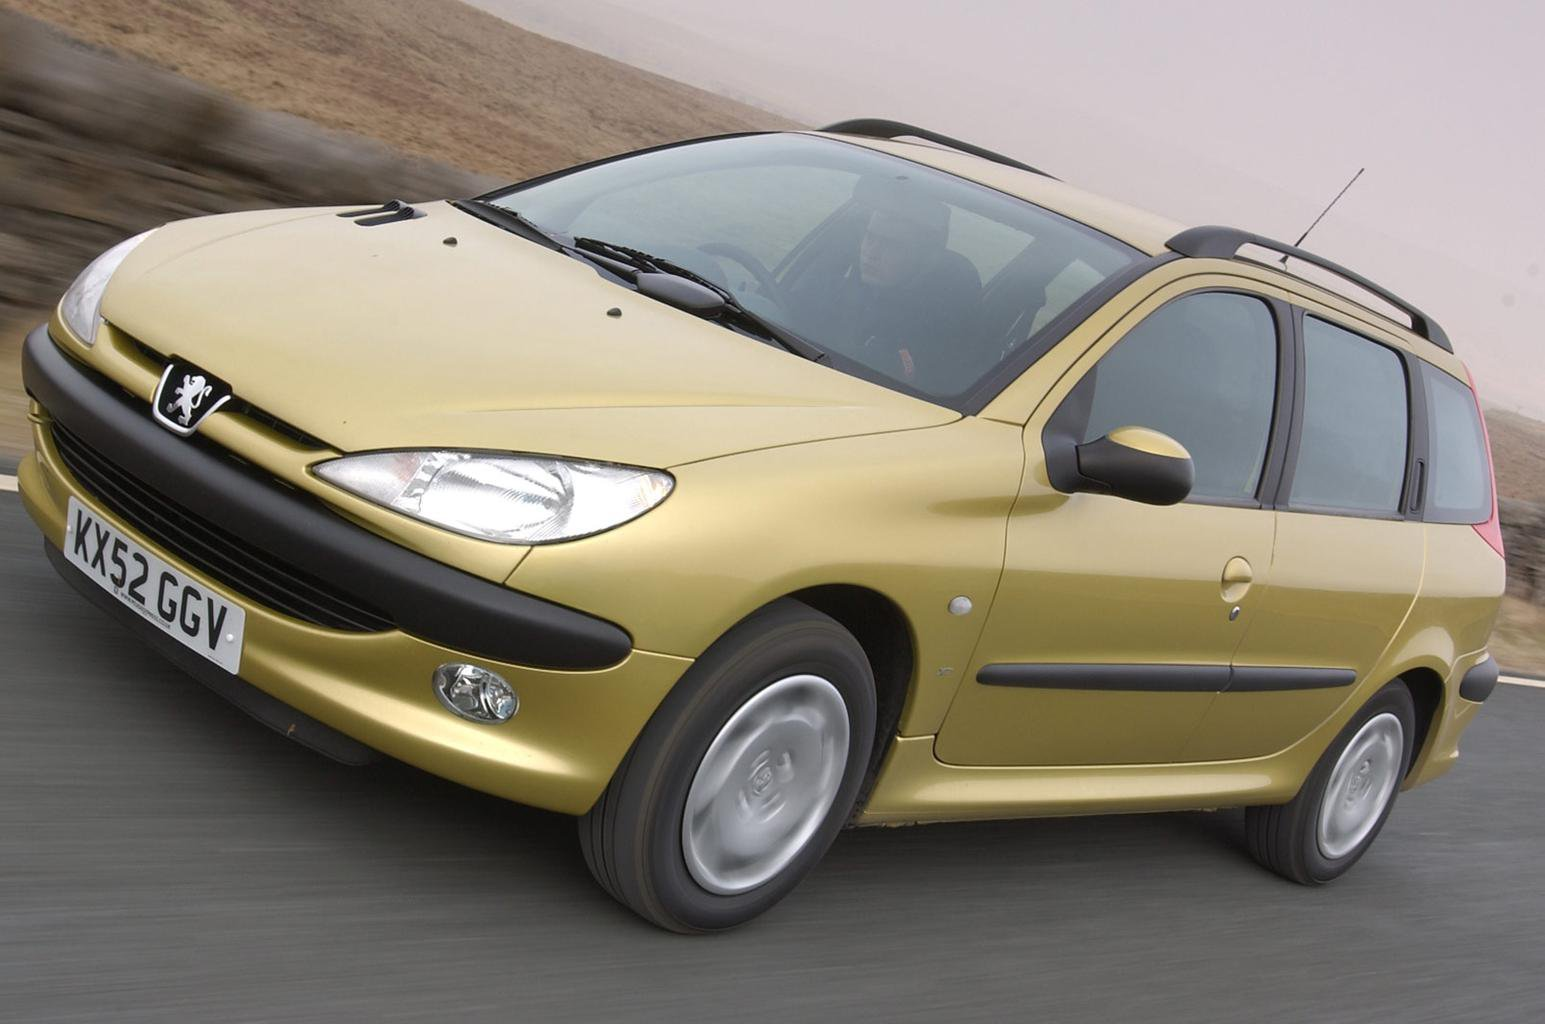 used peugeot 206 review - 1998-2009 reliability, common problems